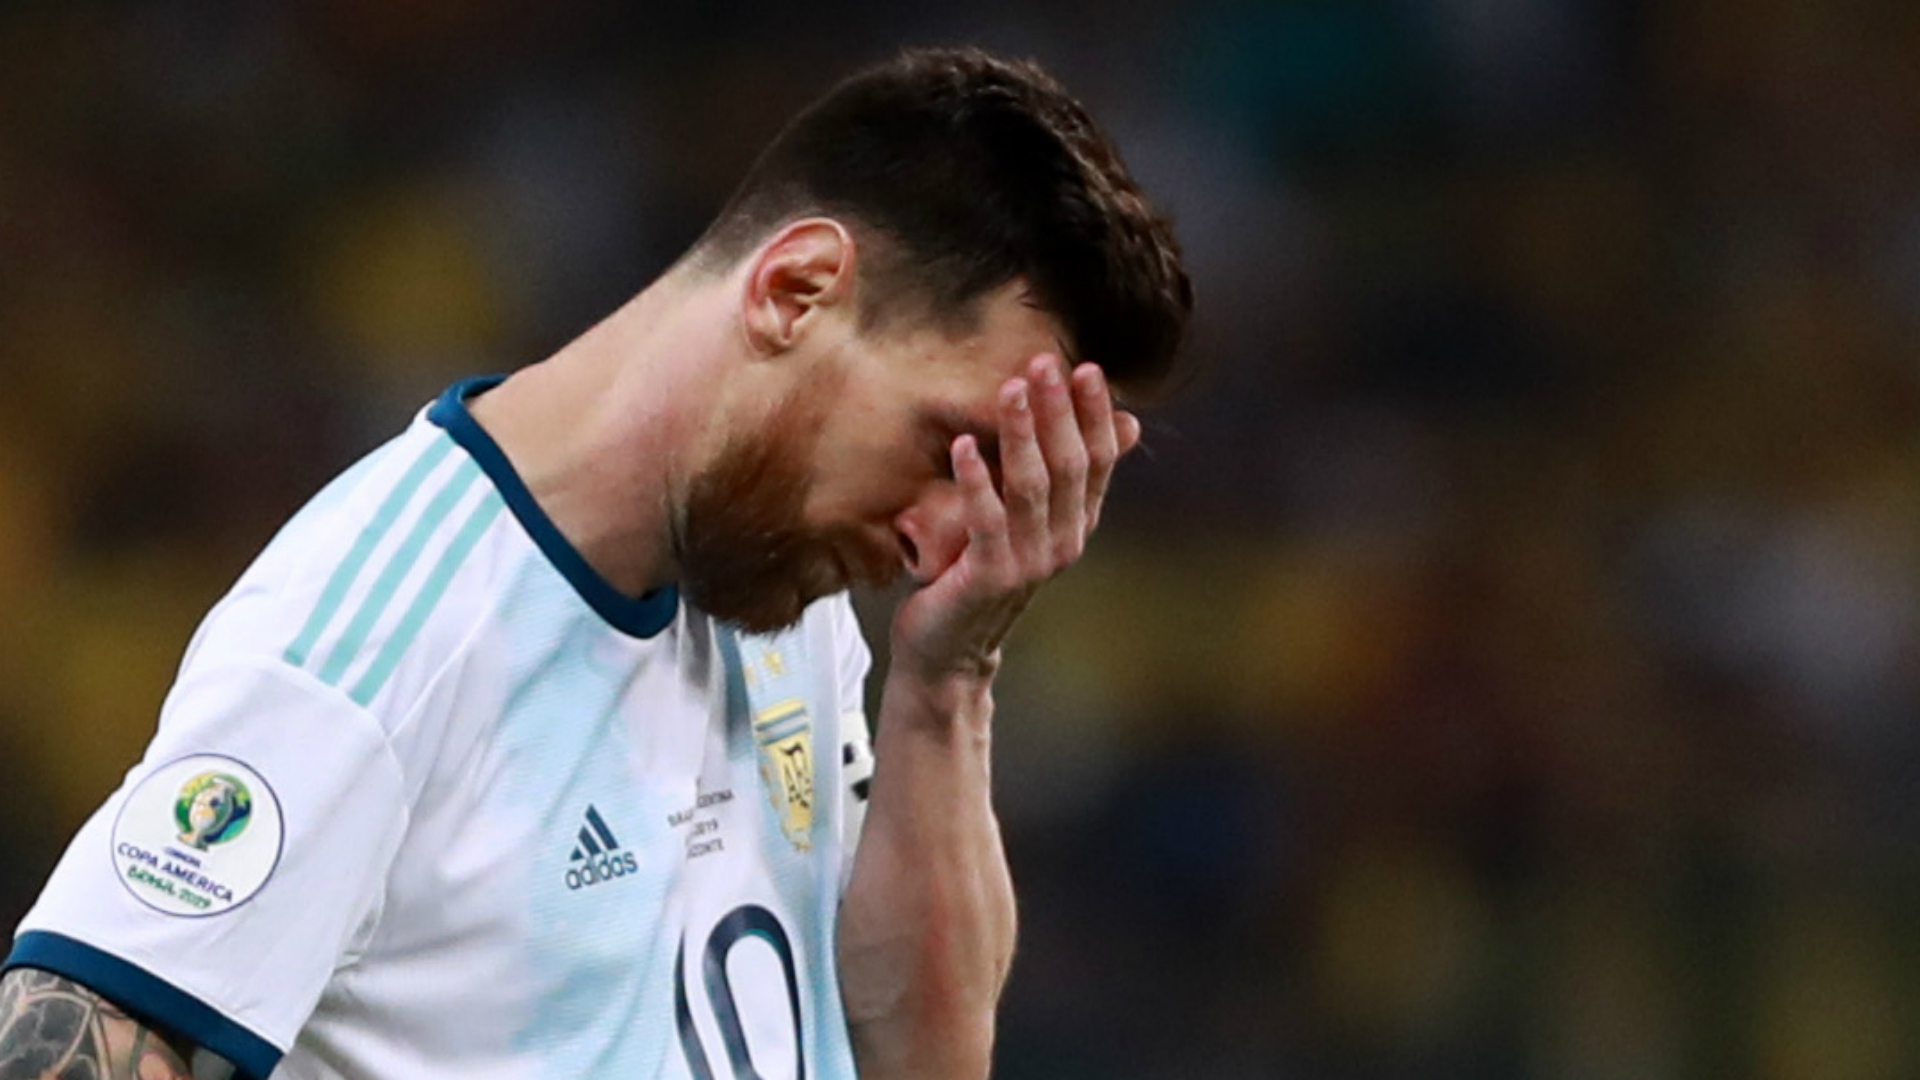 UEFA denies inviting Argentina to Nations League after Messi Copa America row